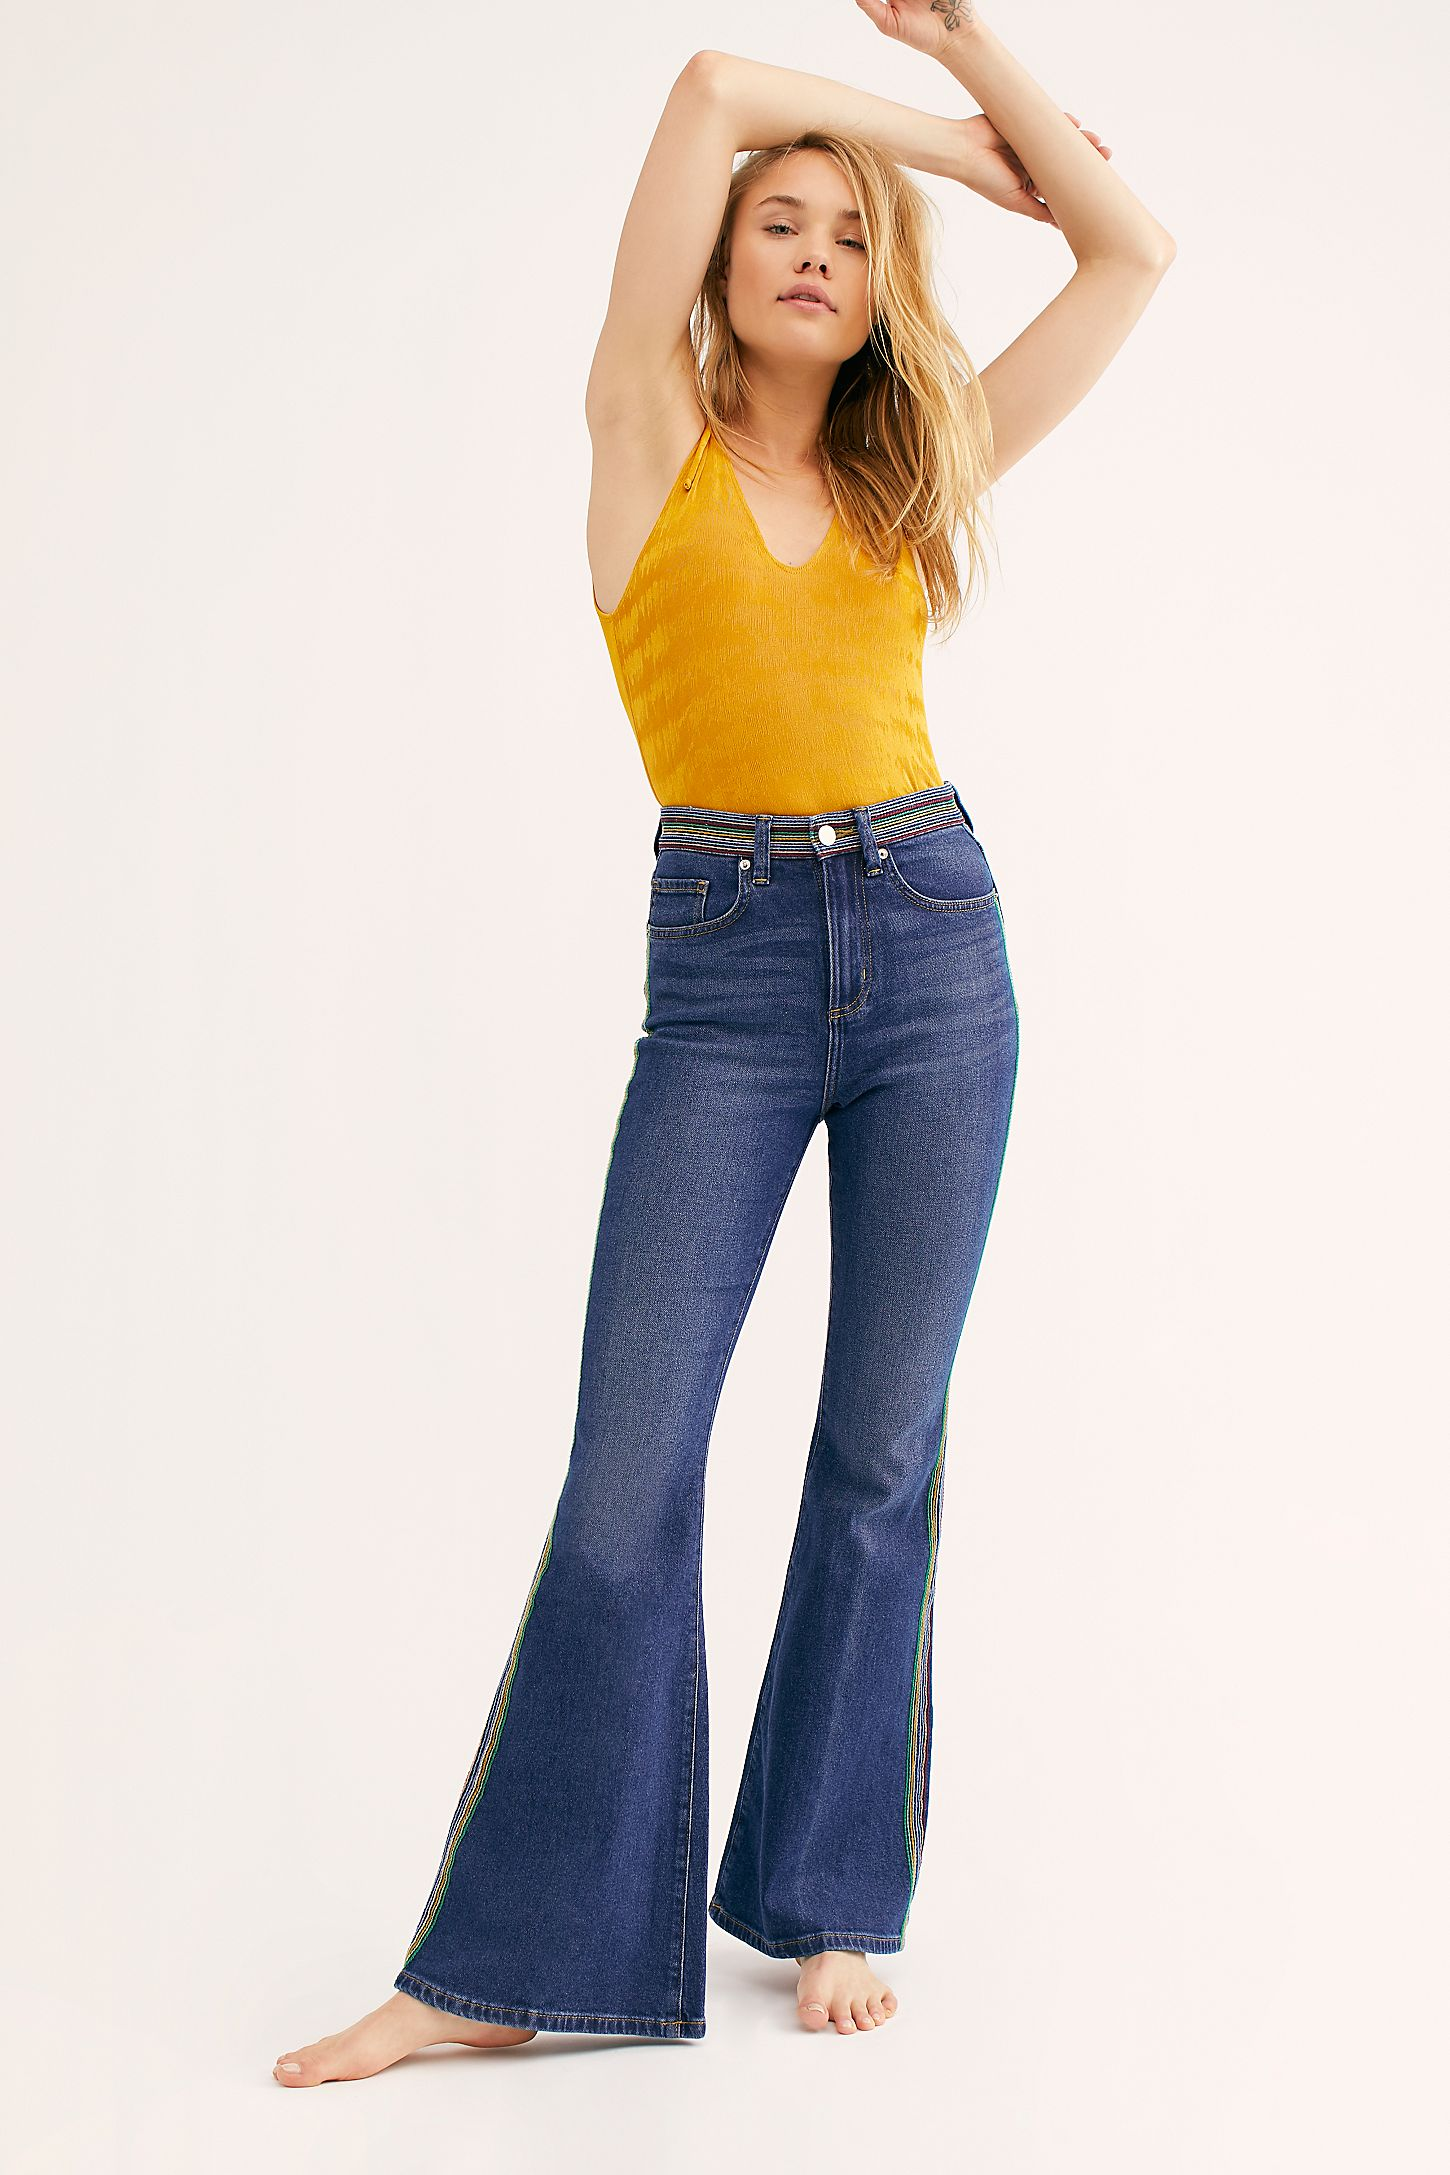 8516d901 Slide View 4: Lee Rainbow High-Rise Flare Jeans